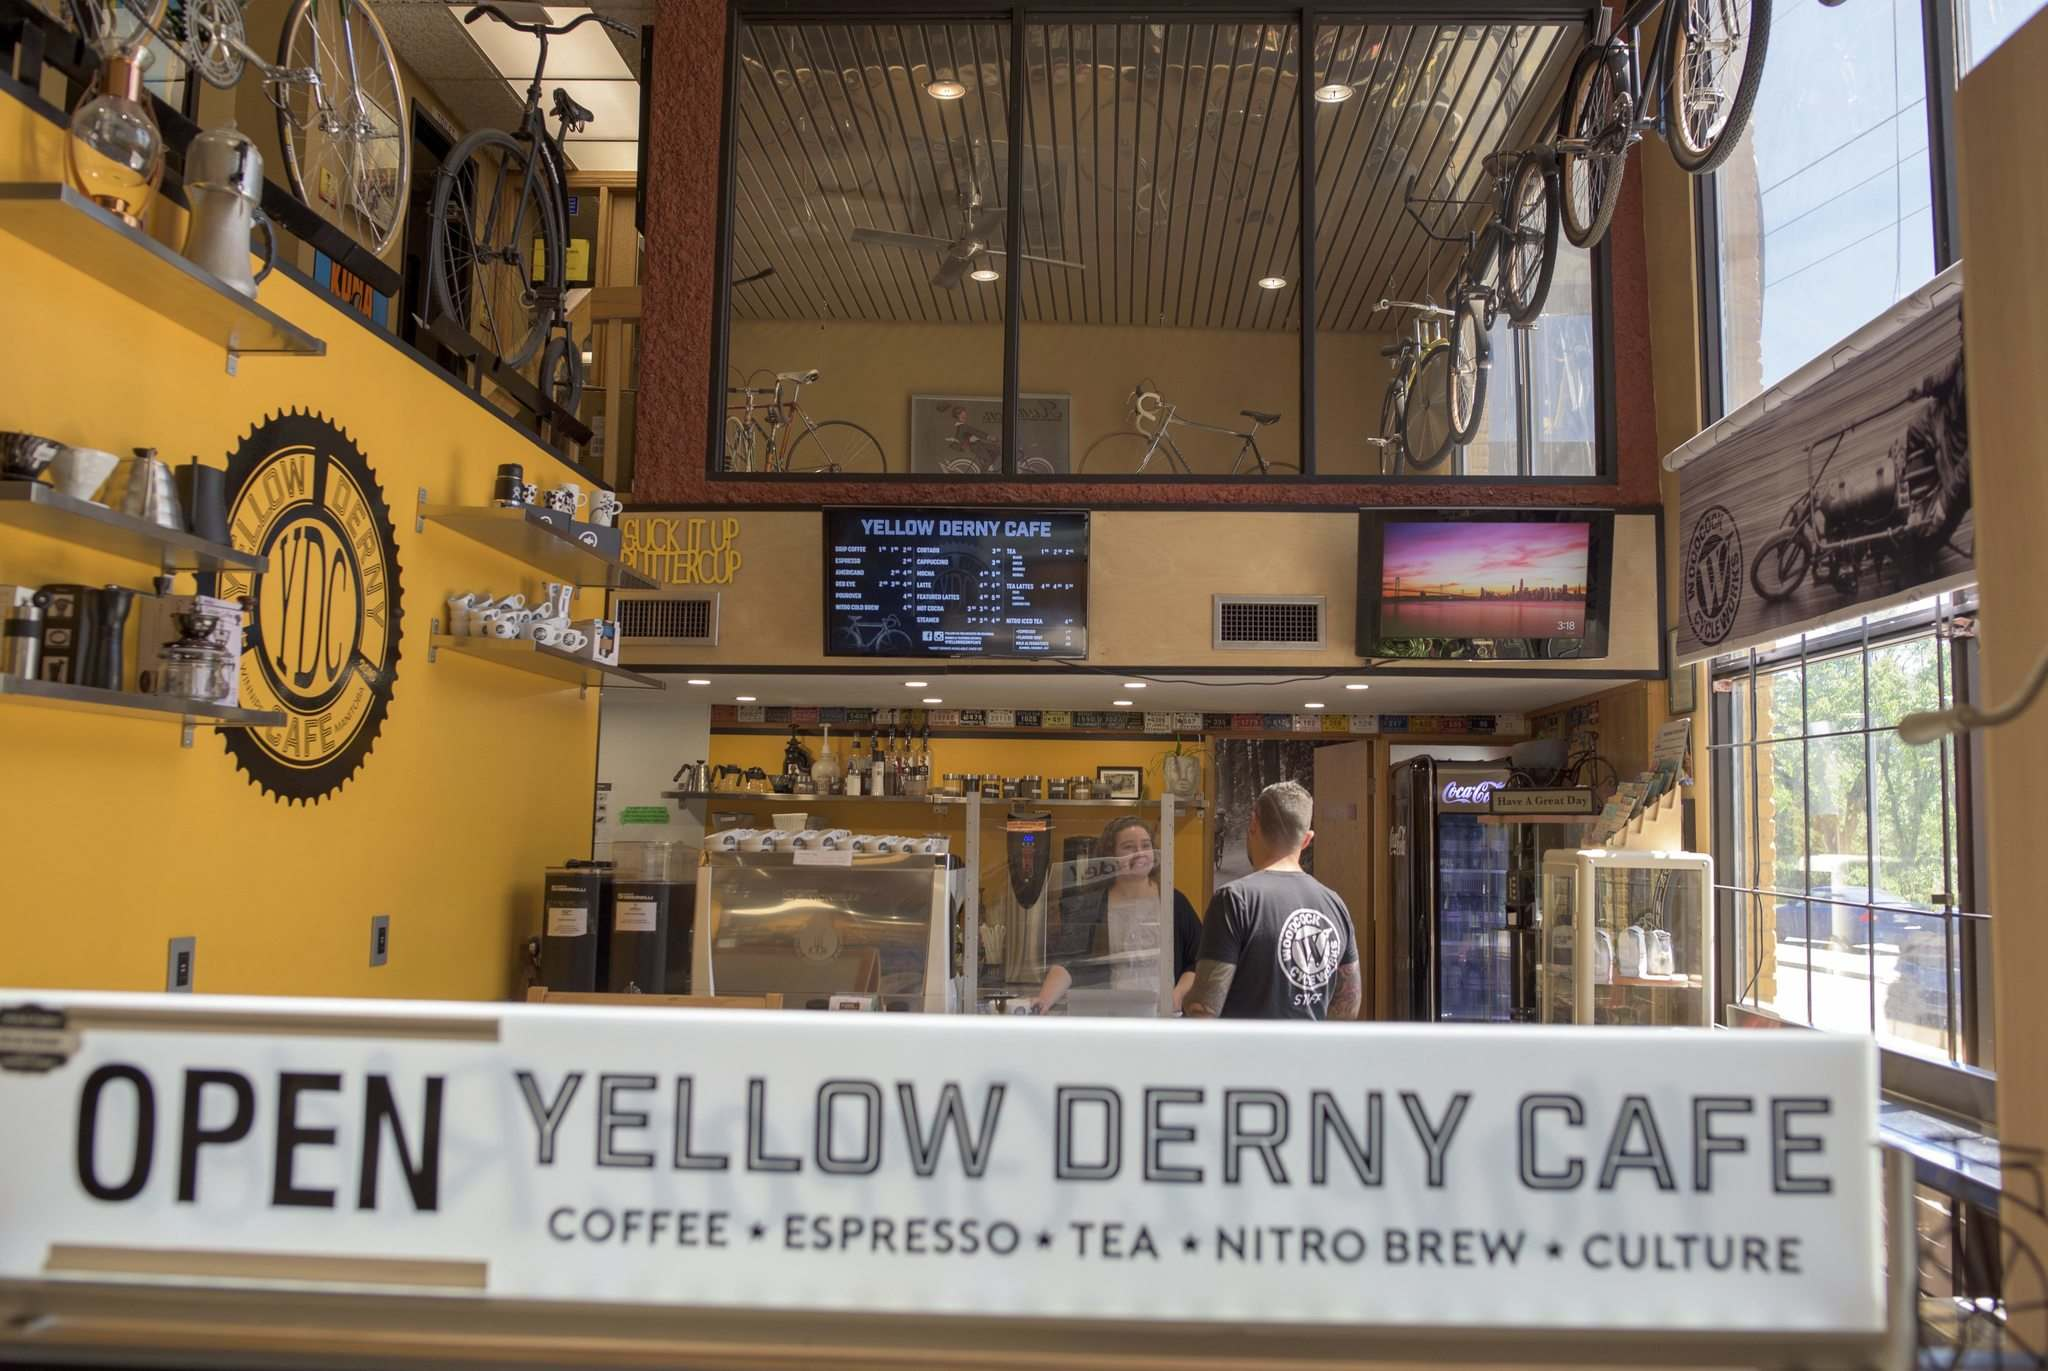 The Yellow Derny Cafe is a tiny coffee spot tucked into Woodcock Cycle Works.